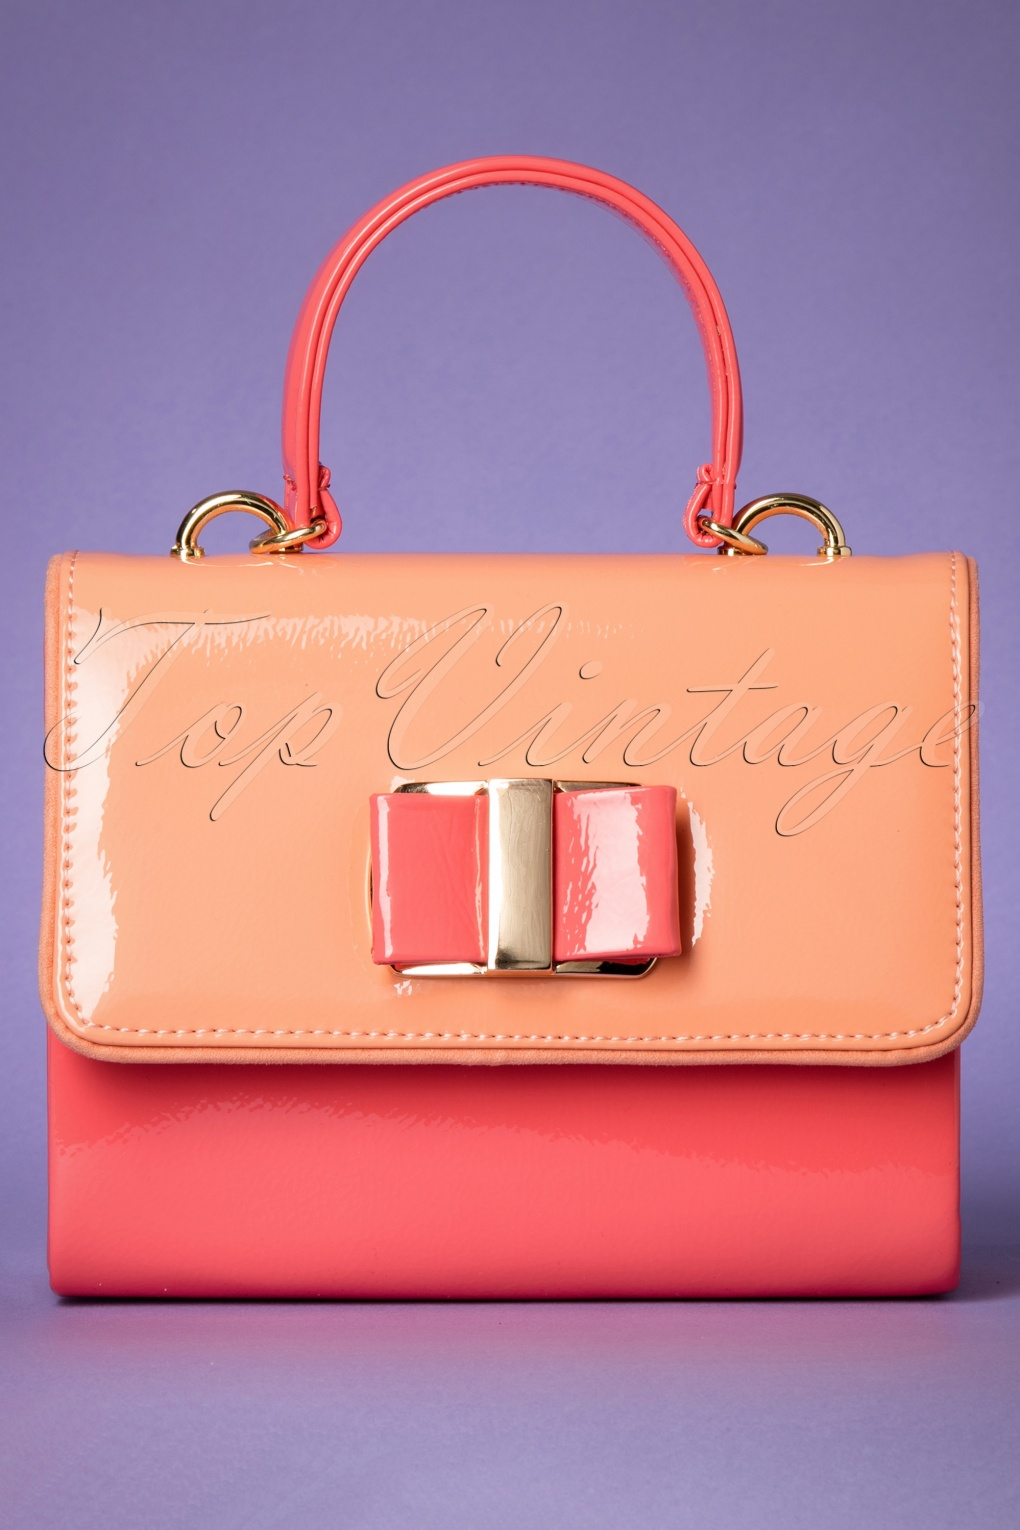 Vintage & Retro Handbags, Purses, Wallets, Bags 60s Casablanca Patent Handbag in Coral £46.13 AT vintagedancer.com